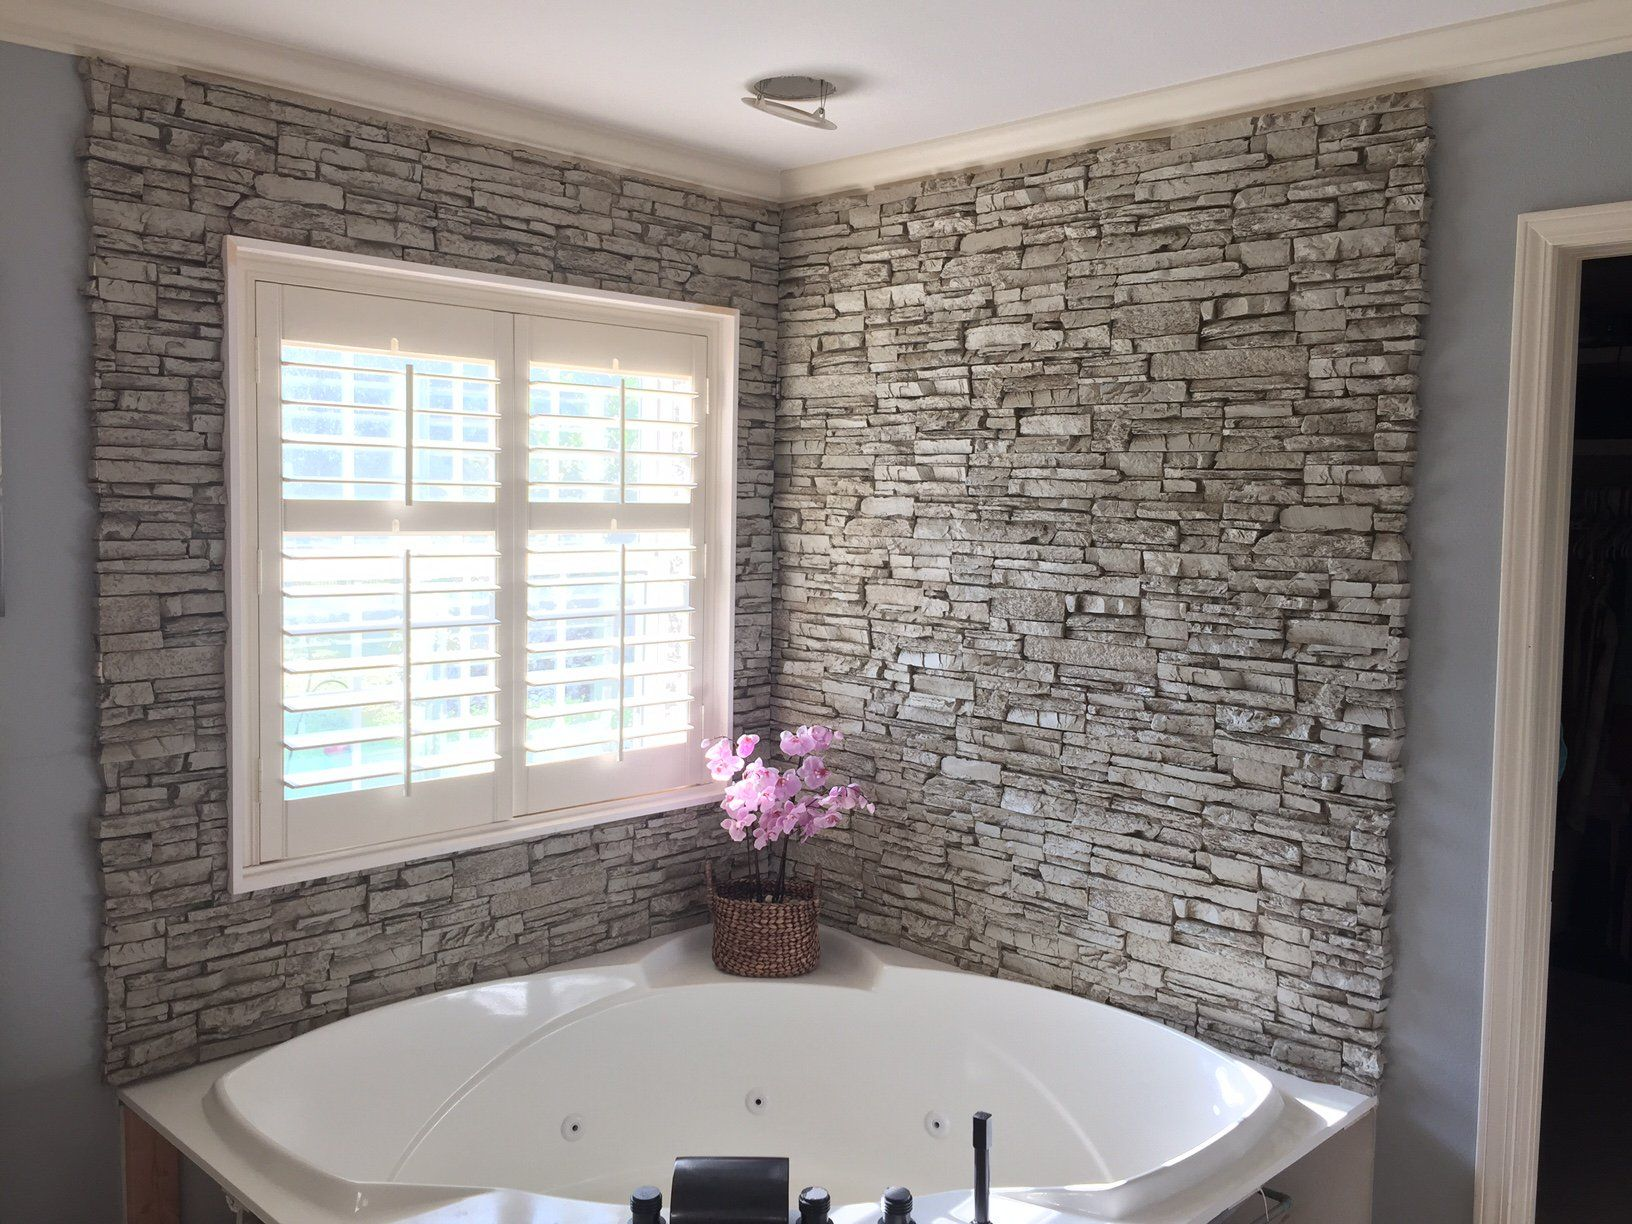 see the bathtub wall surround created with the look of real stacked stone that turned a luxury corner bath into a stunning showpiece